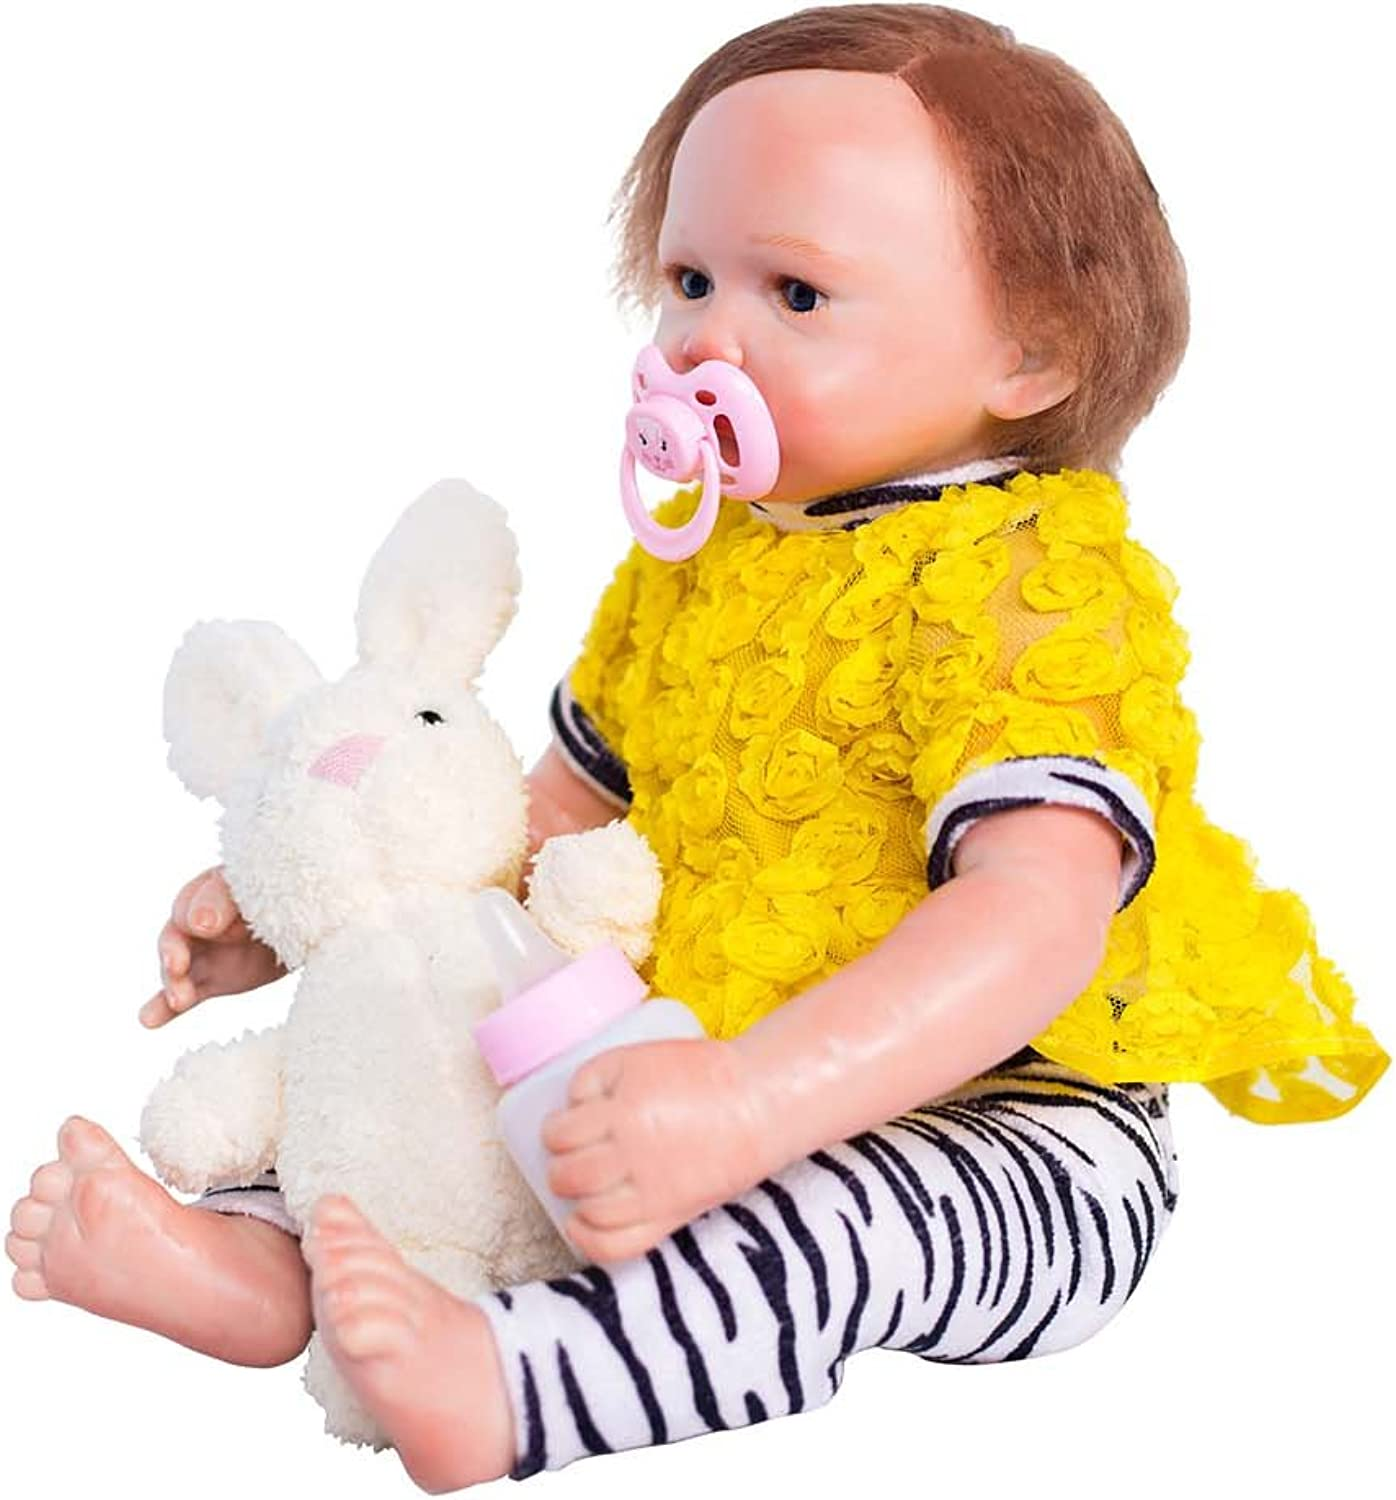 Terabithia 18 inch Real Life Reborn Baby Doll,Cute Giraffe,Girl Doll Crafted in Vinyl Like Silicone and Weighted Cloth Body